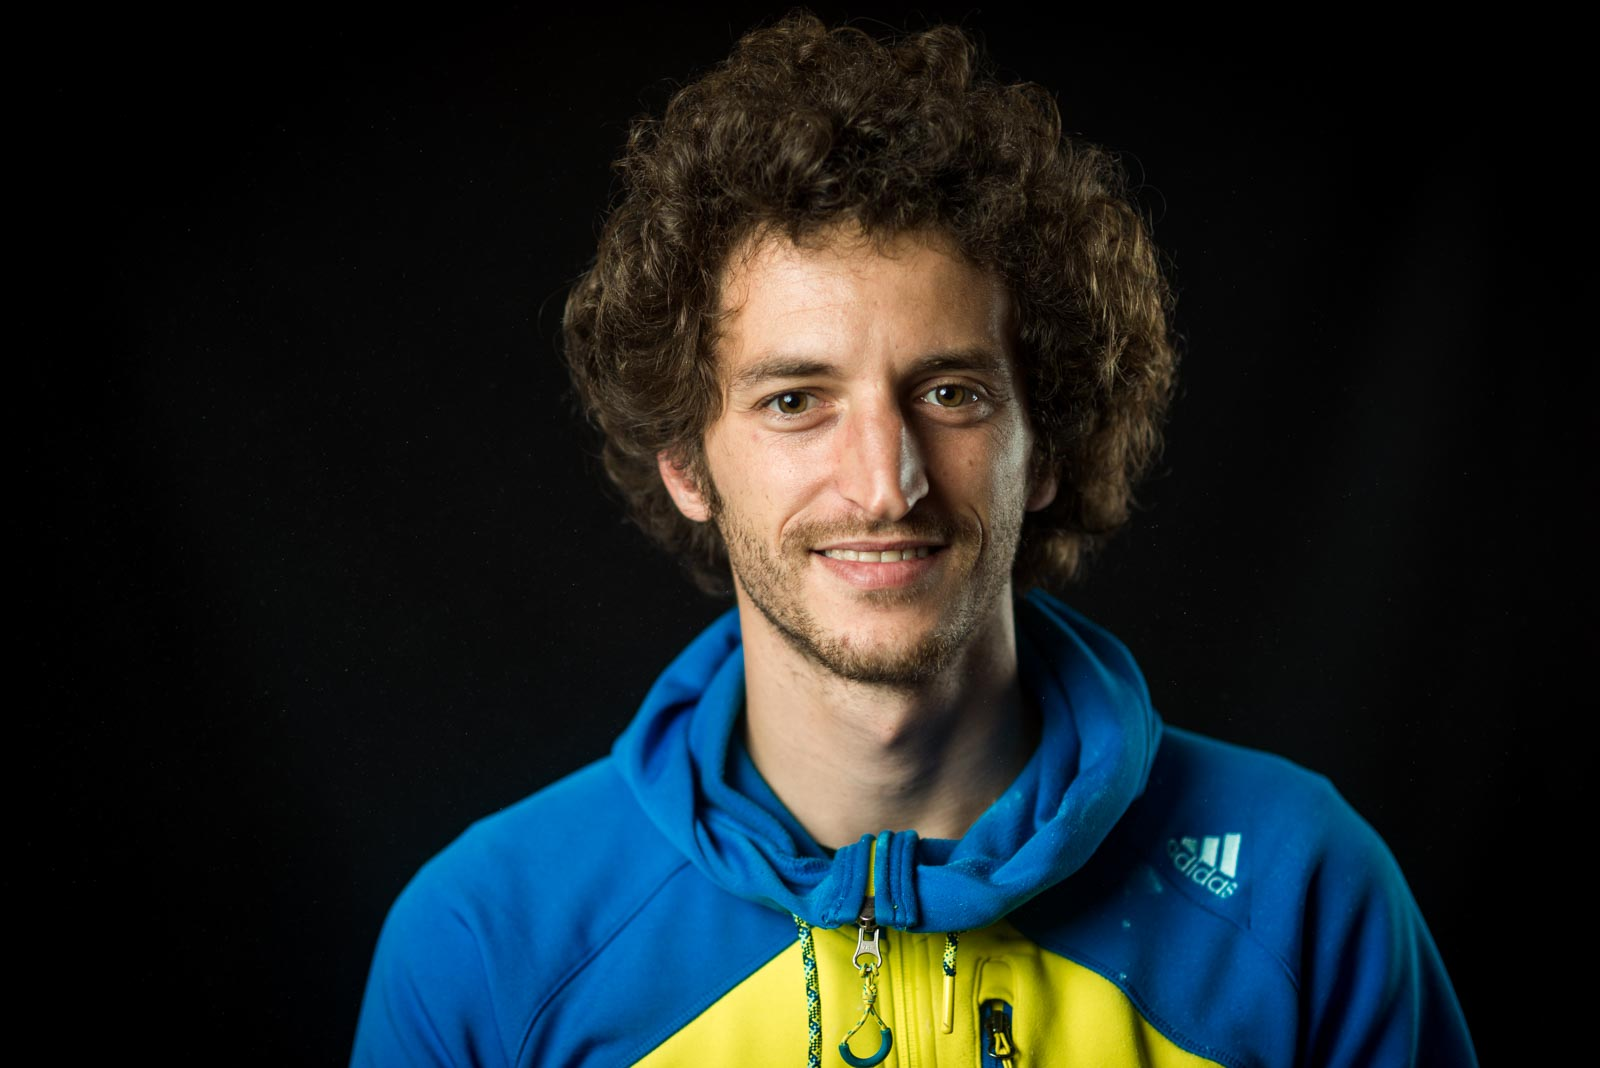 Portrait of French climber Guillaume Glairon Mondet